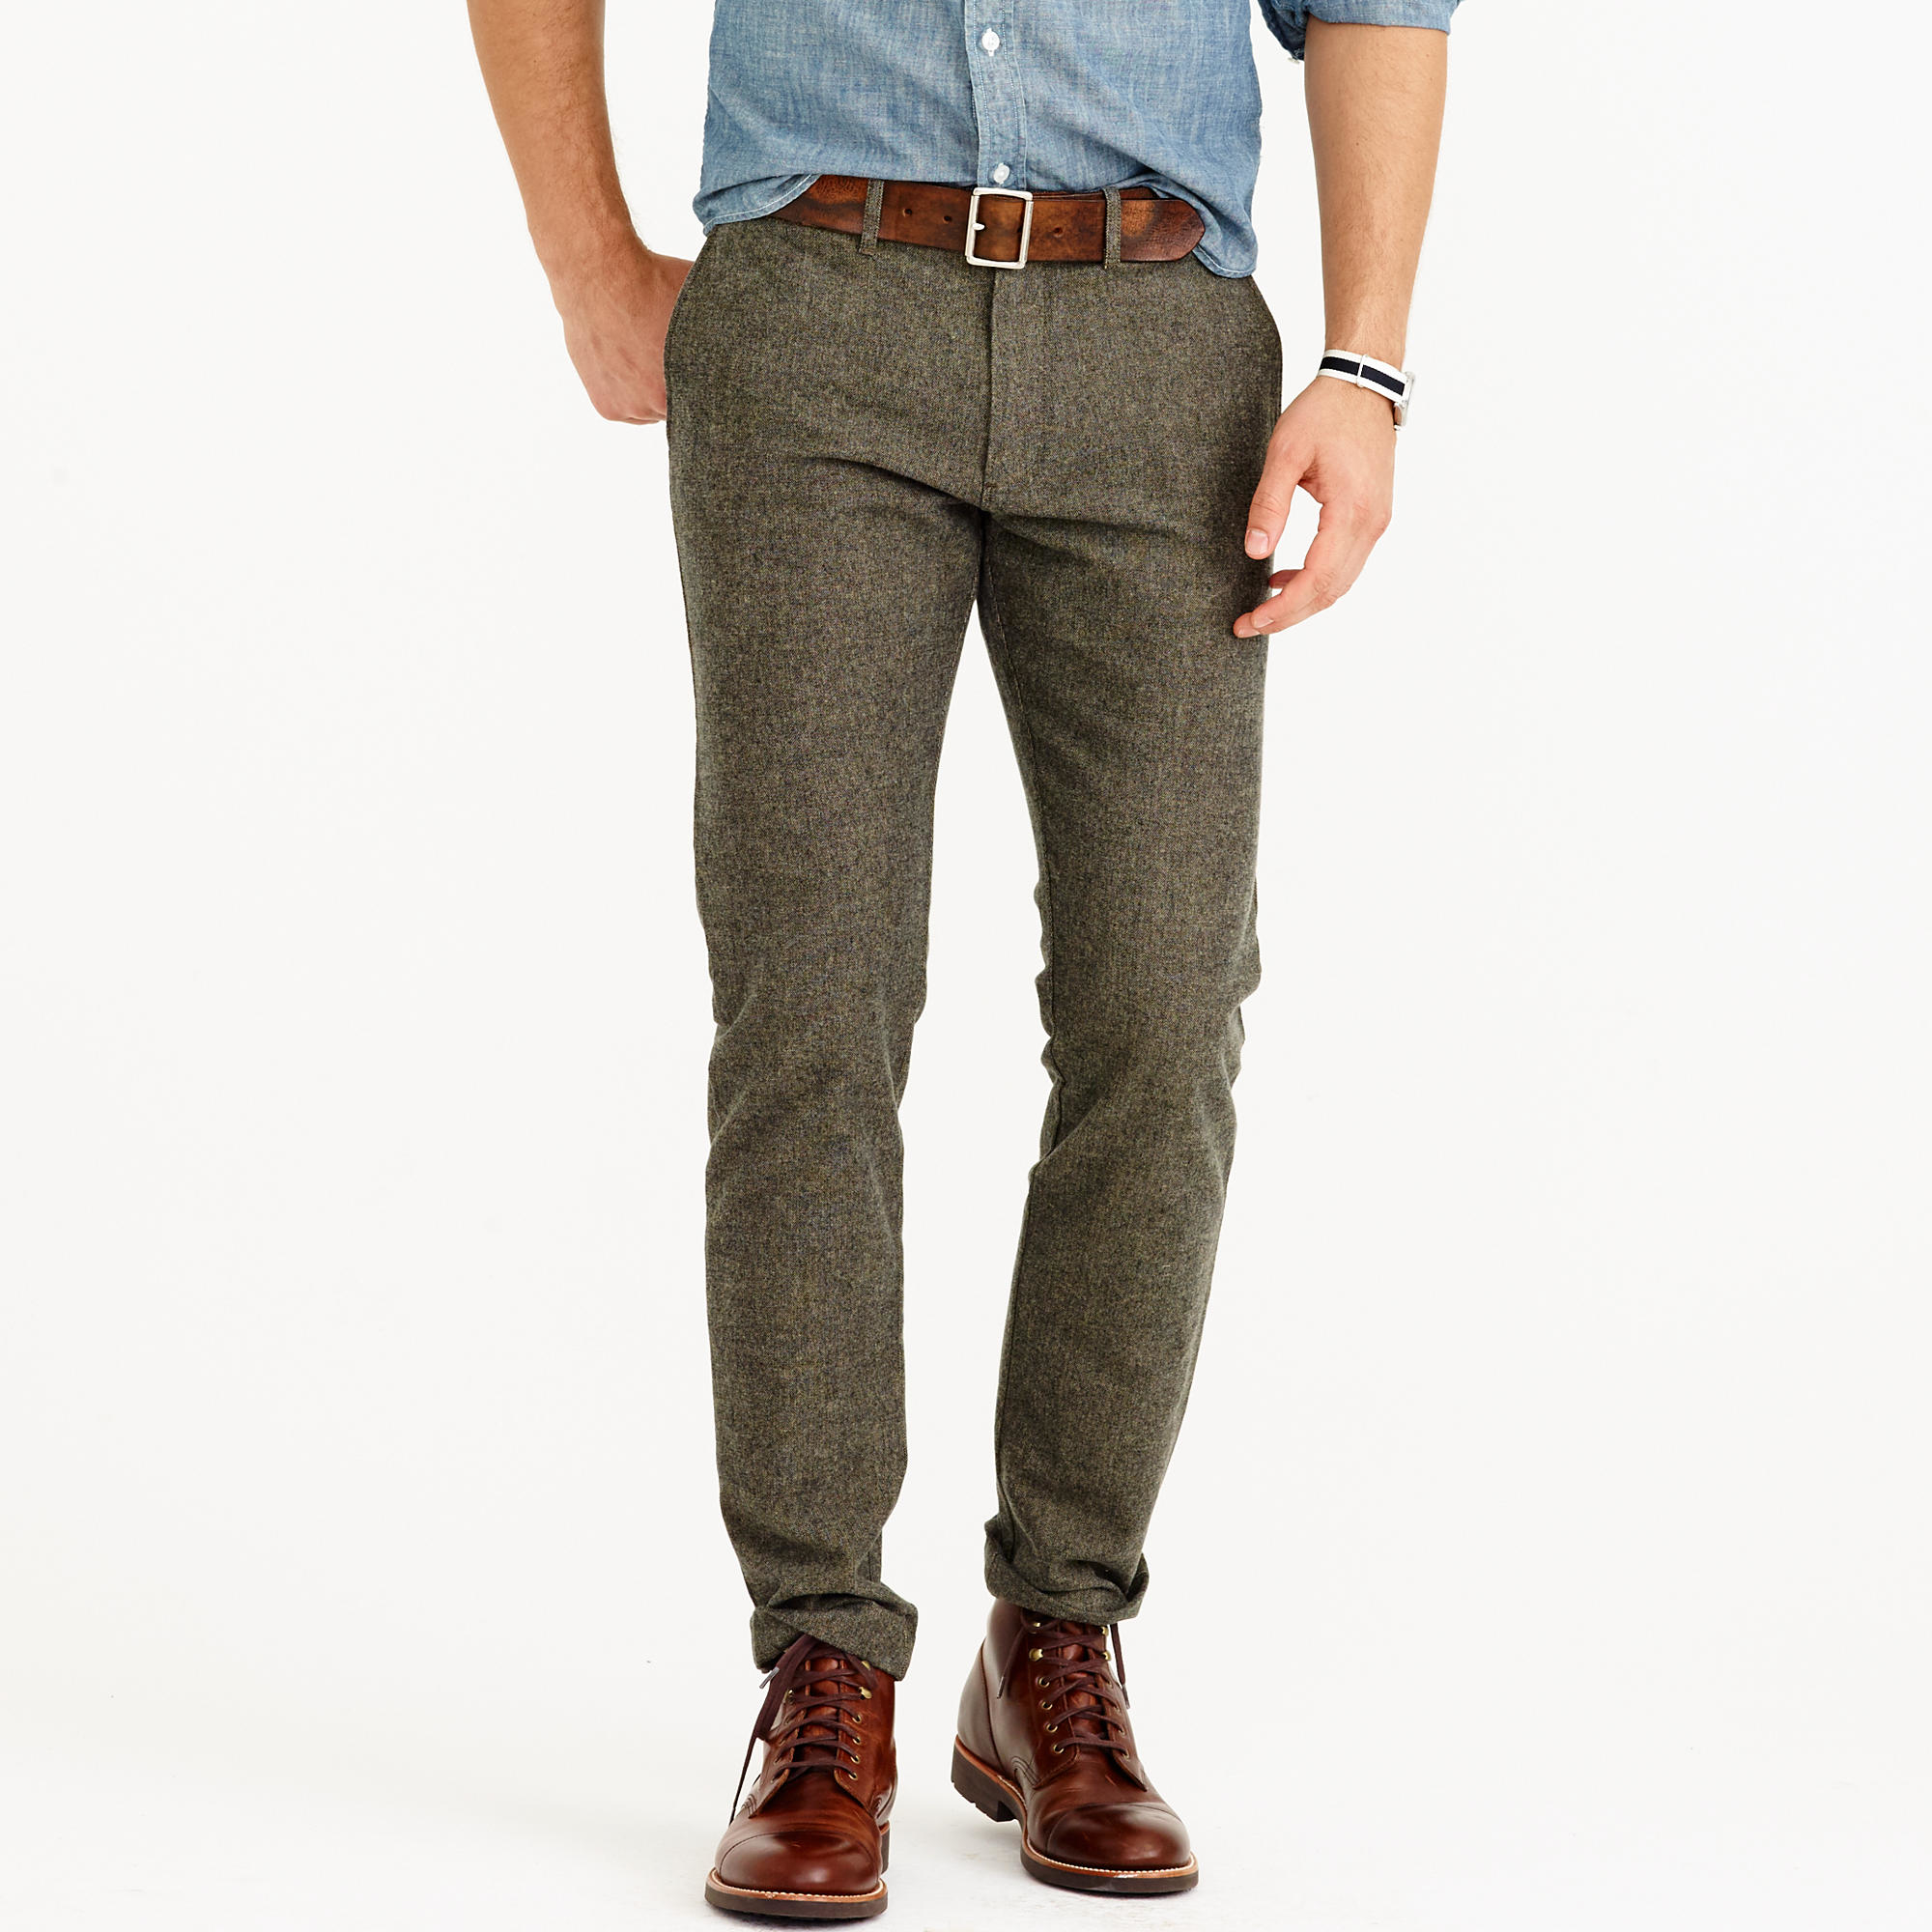 J.crew Brushed Cotton Twill Mélange Chino In 484 Fit in ...